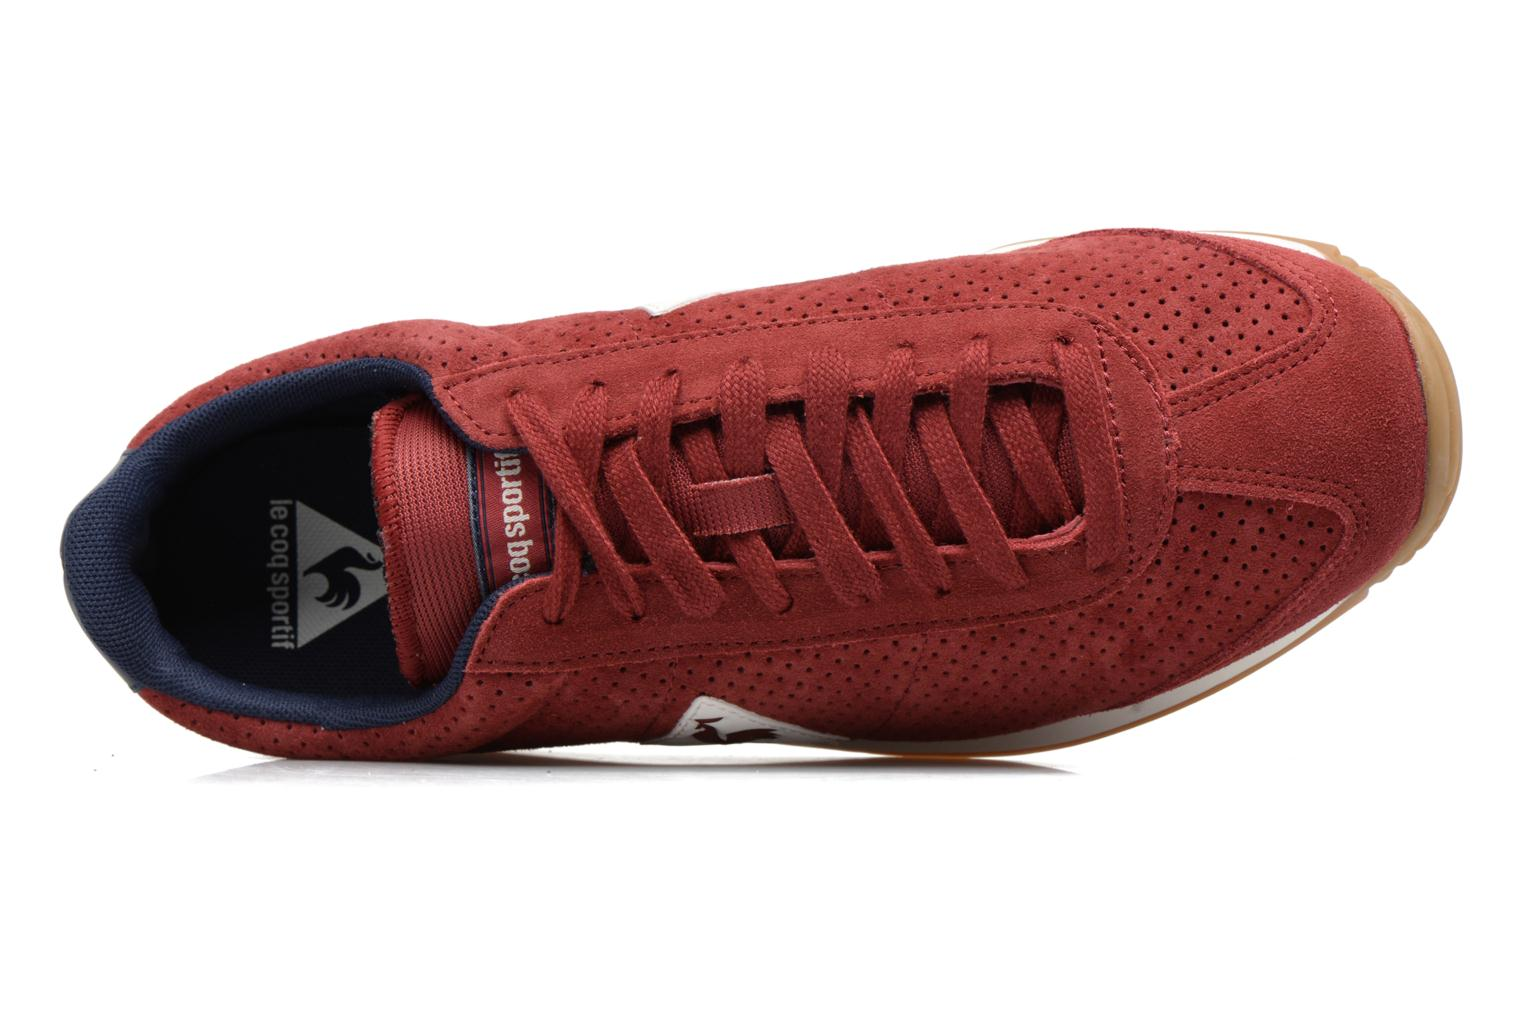 Baskets Le Coq Sportif Quartz Perforated Nubuck Rouge vue gauche